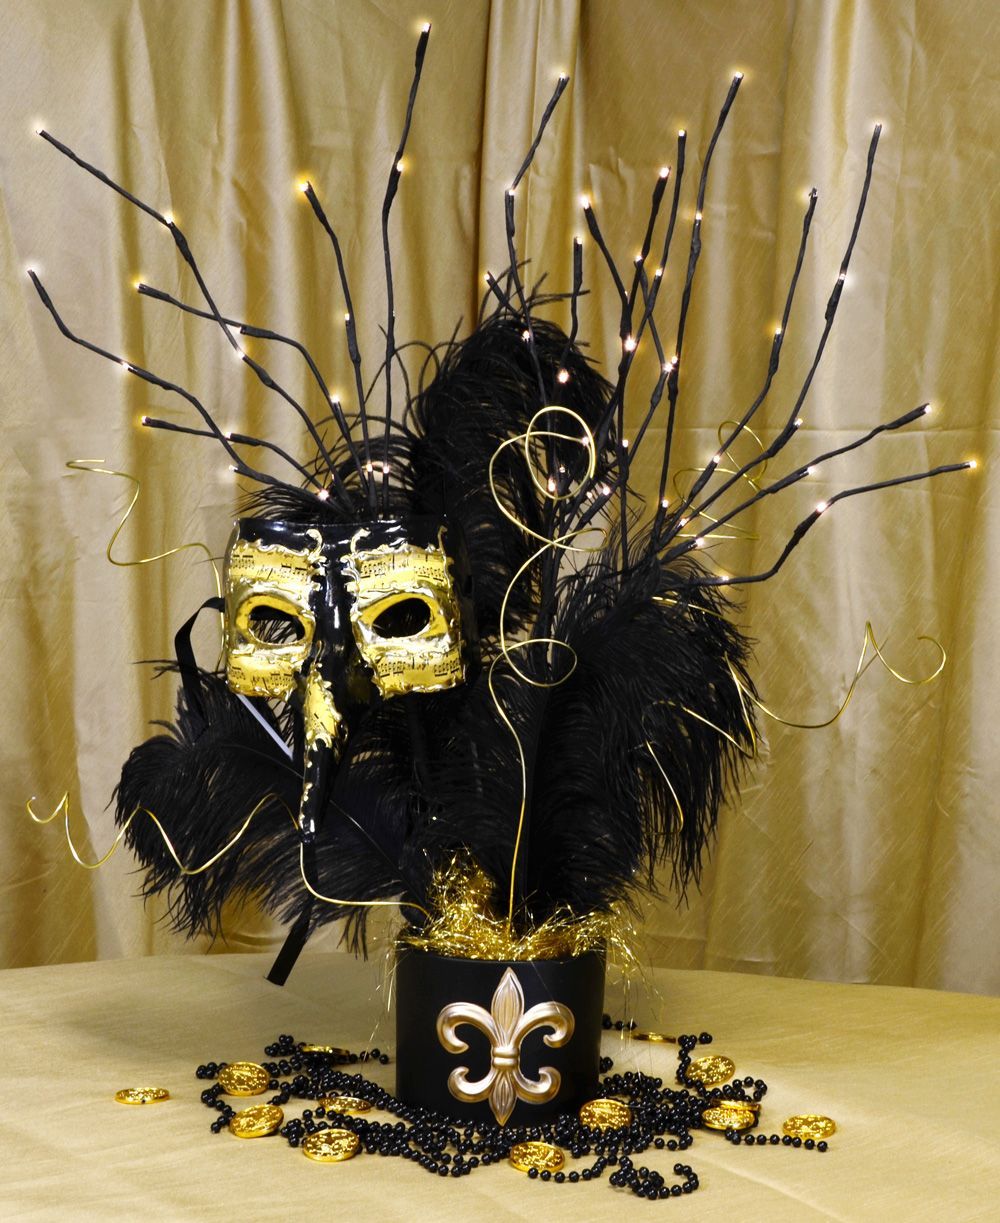 Masquerade Ball Wedding Ideas: Centerpieces For Quinceaneras Masquerade